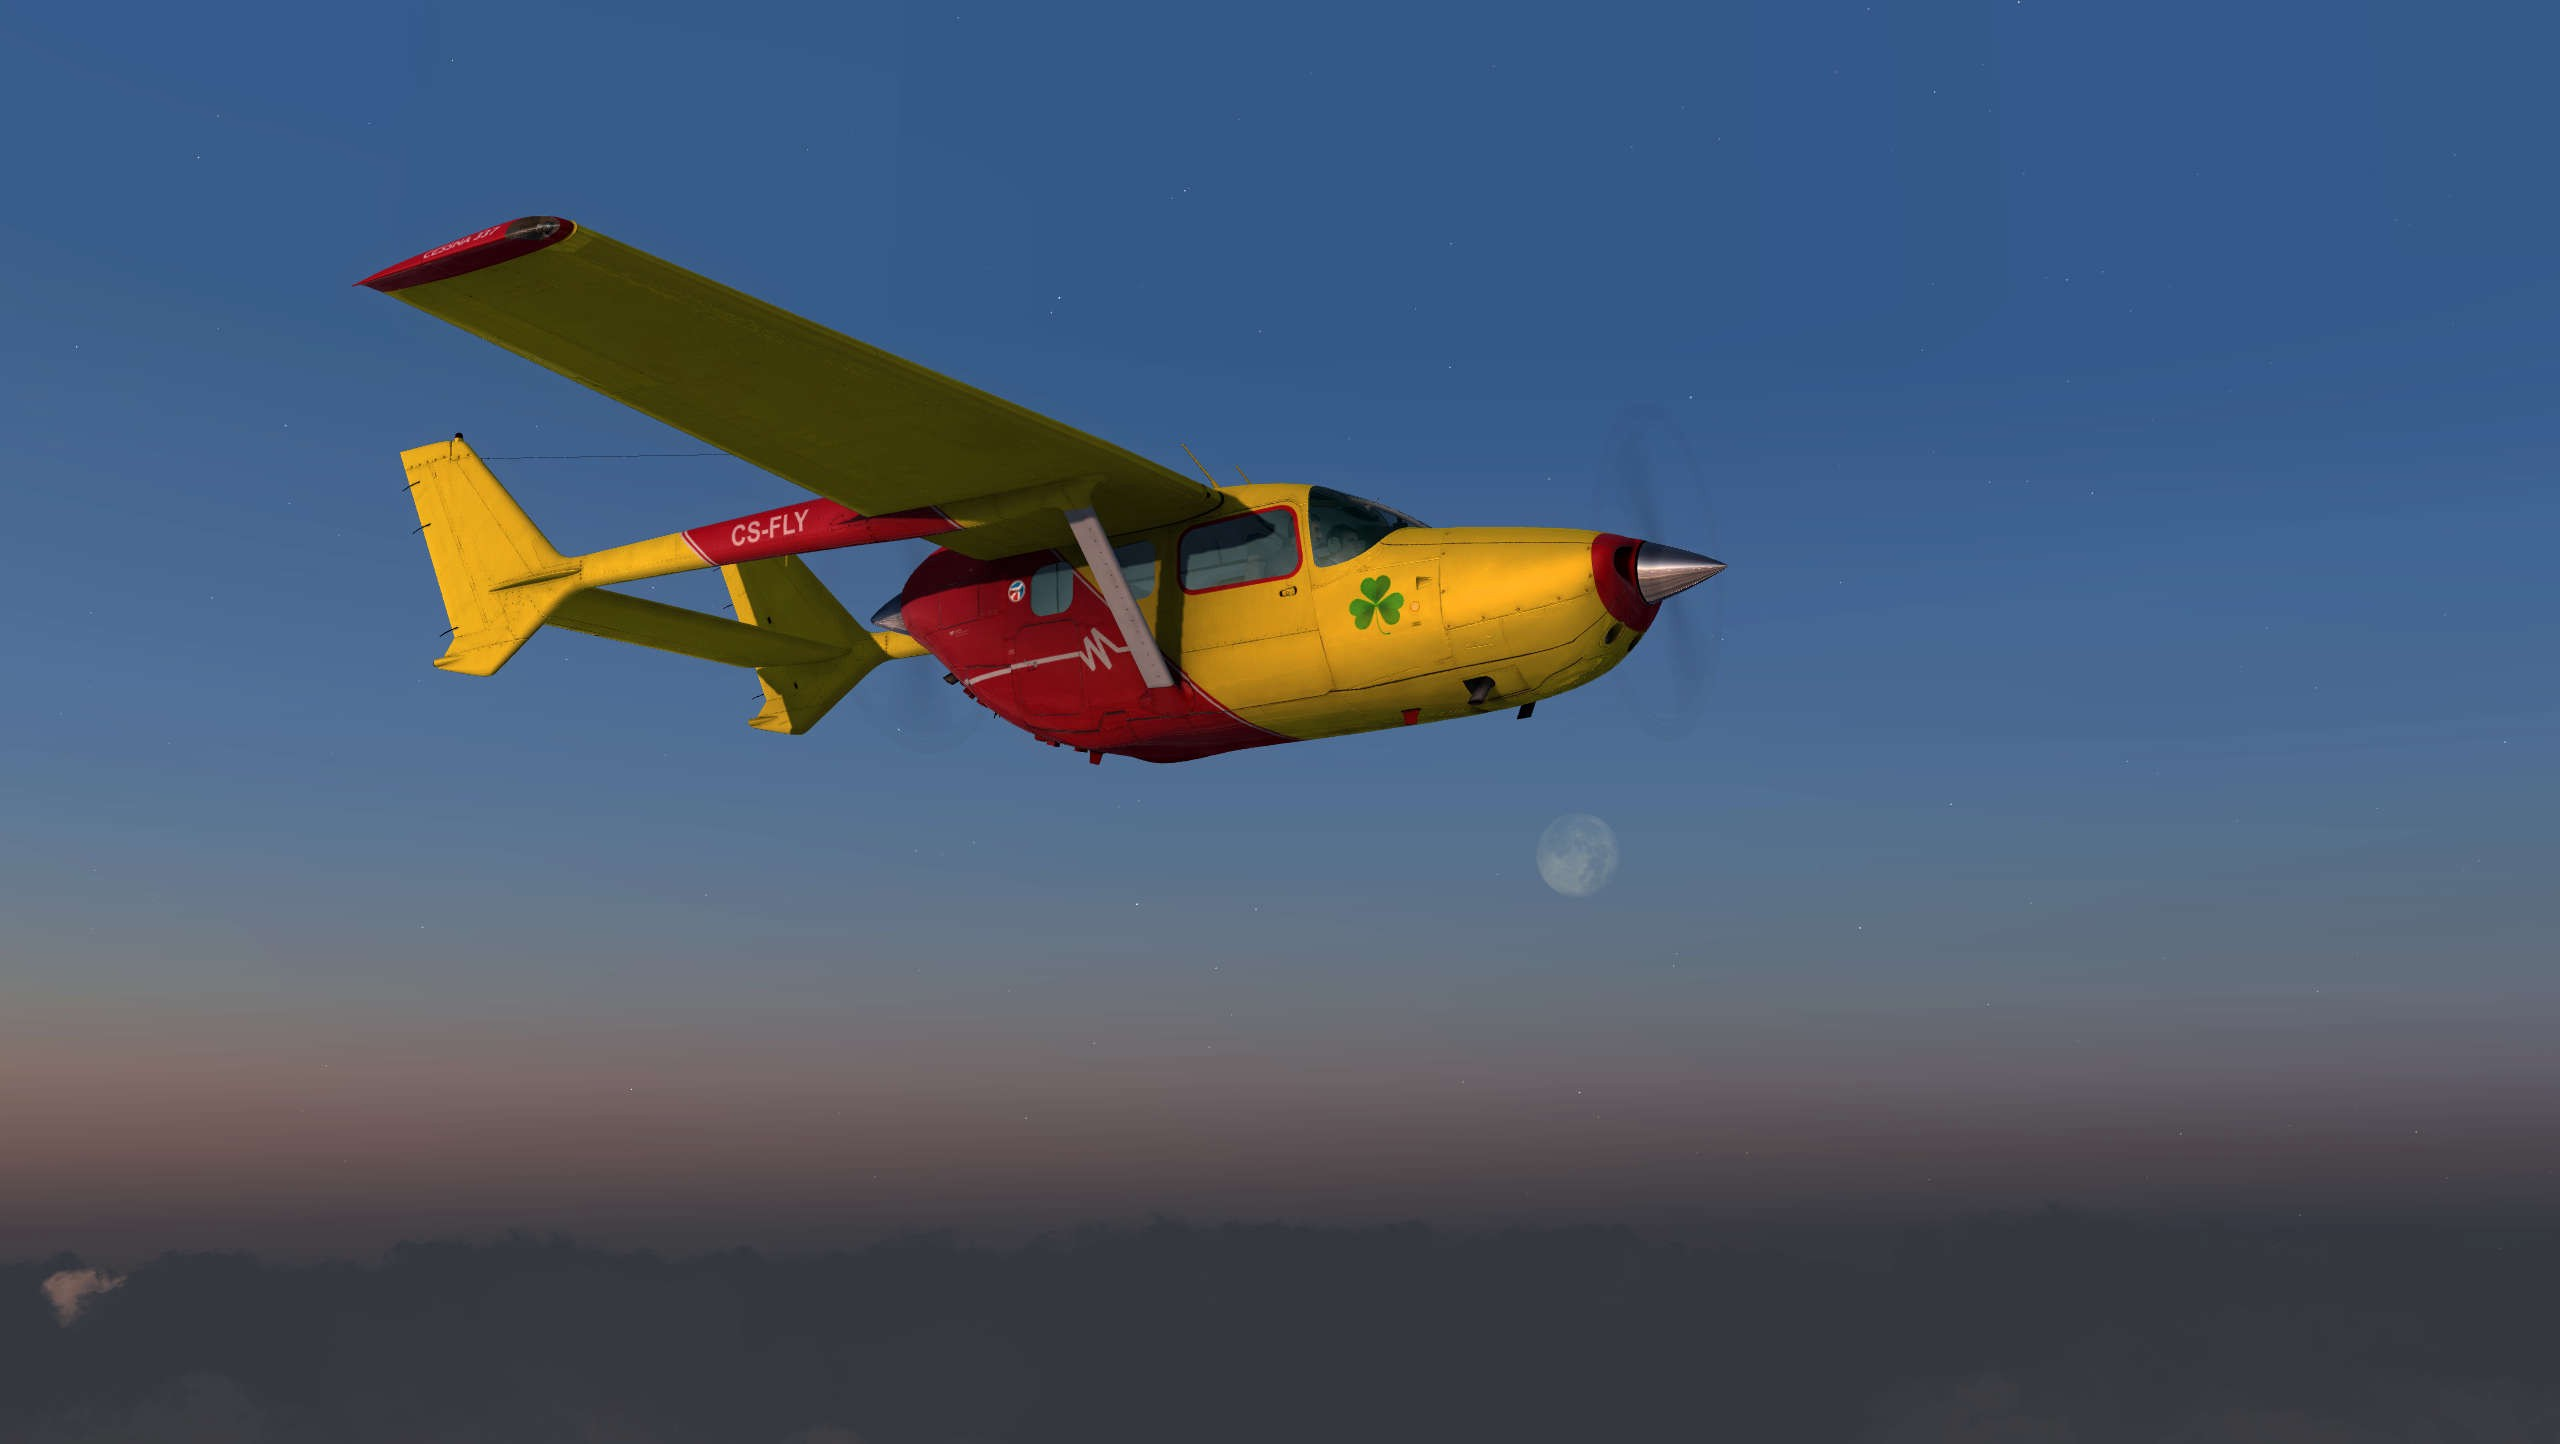 Windows 10 April update killed my FSX-SE - Outpost2 - Medium